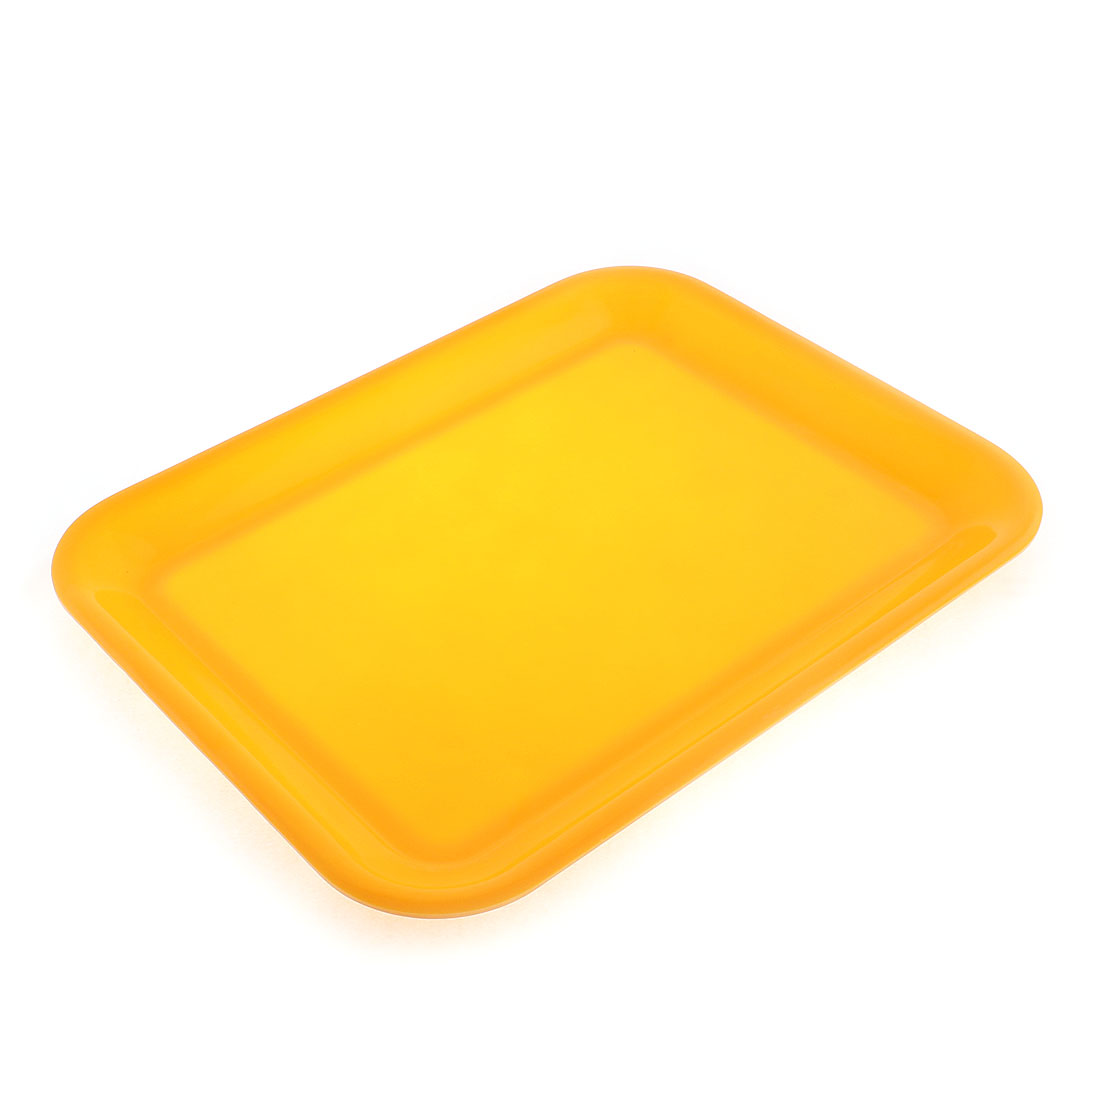 "Restaurant Plastic Rectangle Shaped Food Sandwich Serving Tray Yellow 15"" Length"